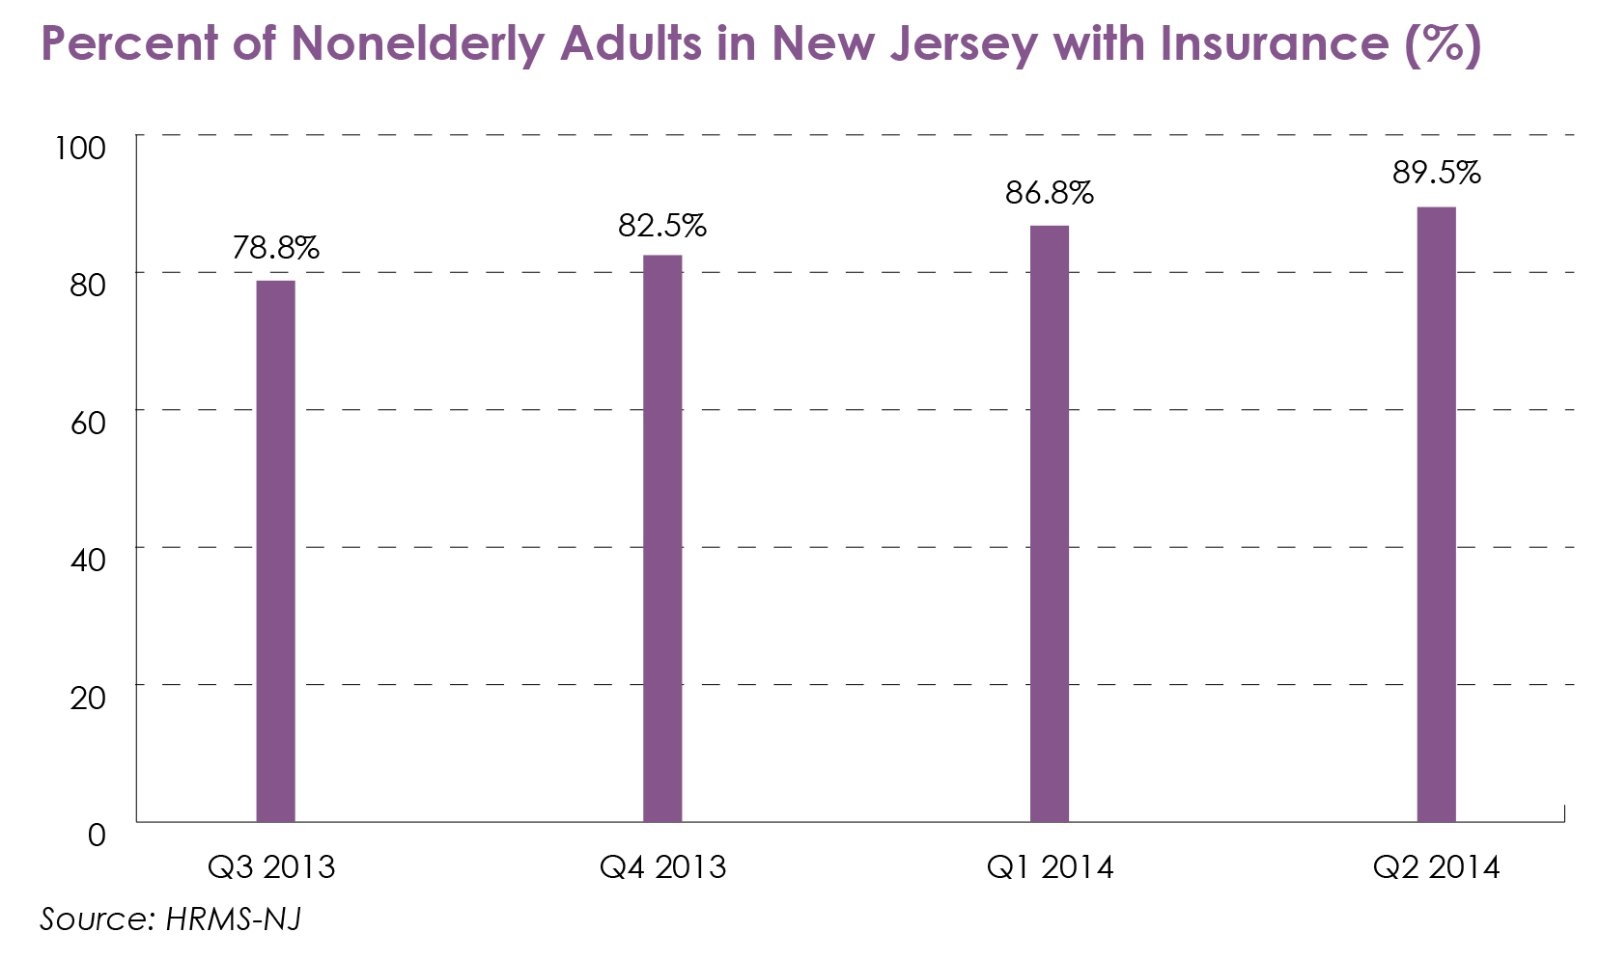 Bar graph visualizing the percentage of nonelderly adults in New Jersey with insurance